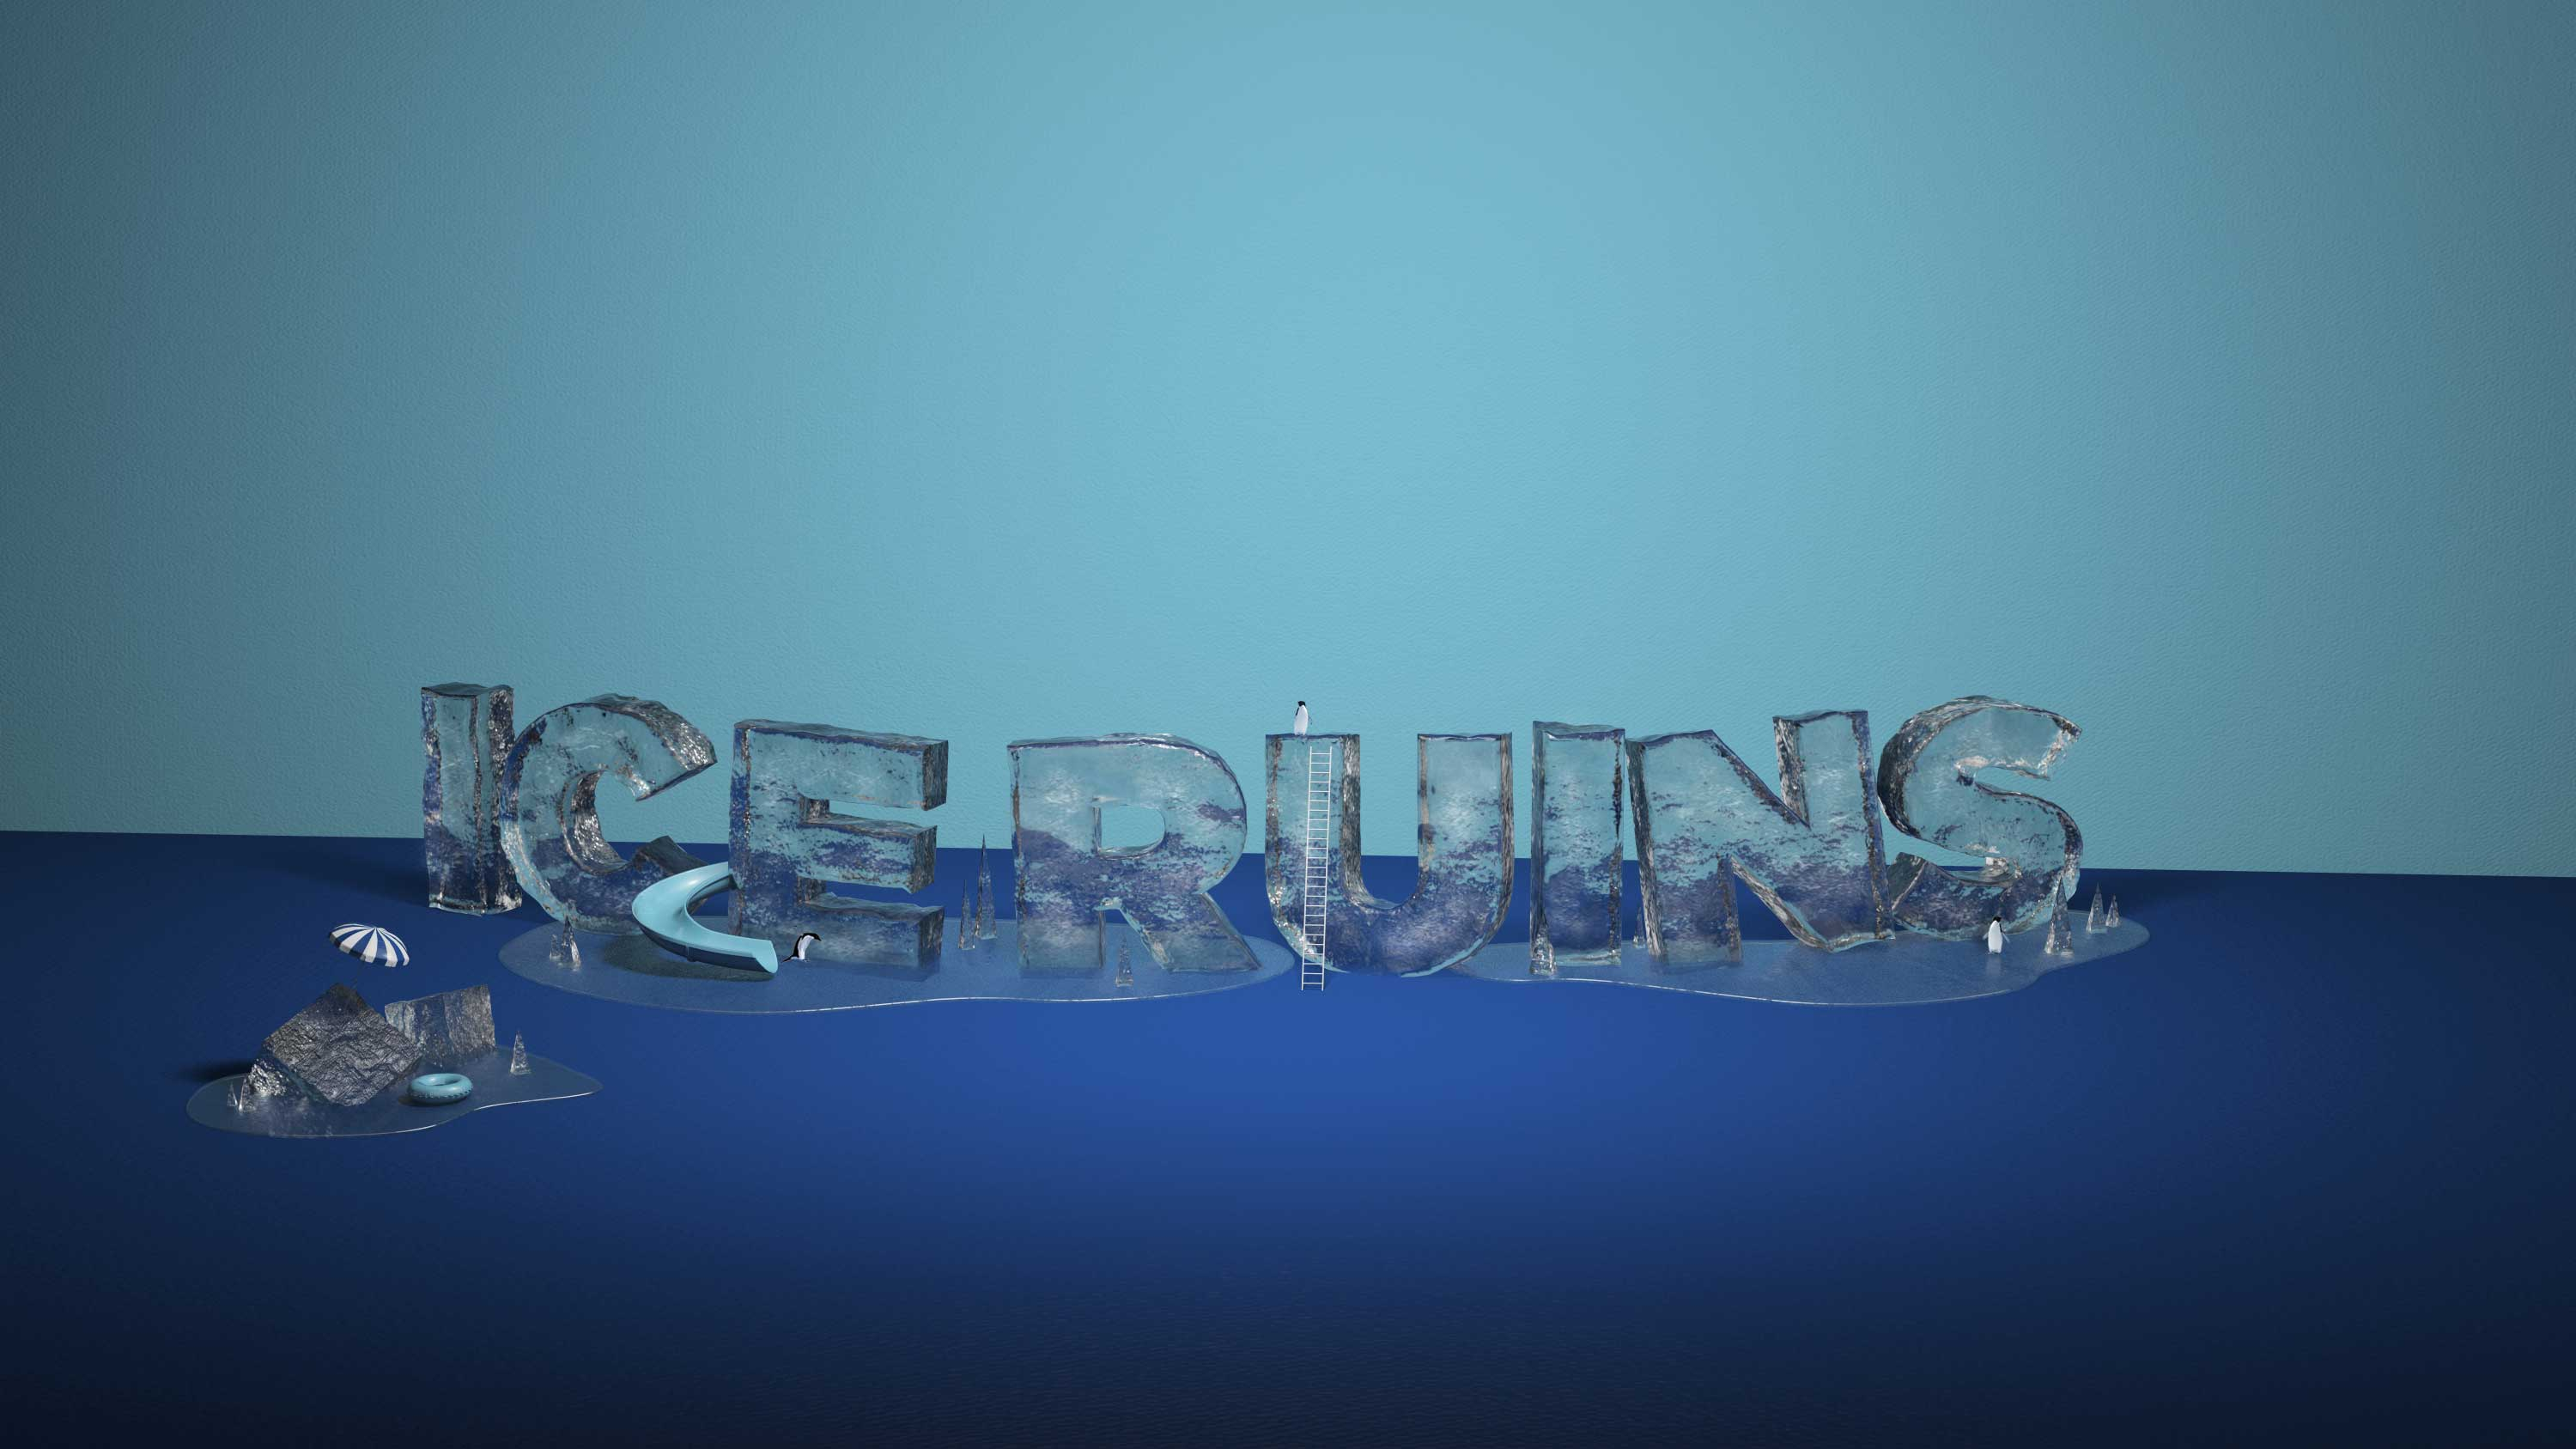 Cgi Logos Type Design 3d Graphic Design Of The Word Ice Ruins Made